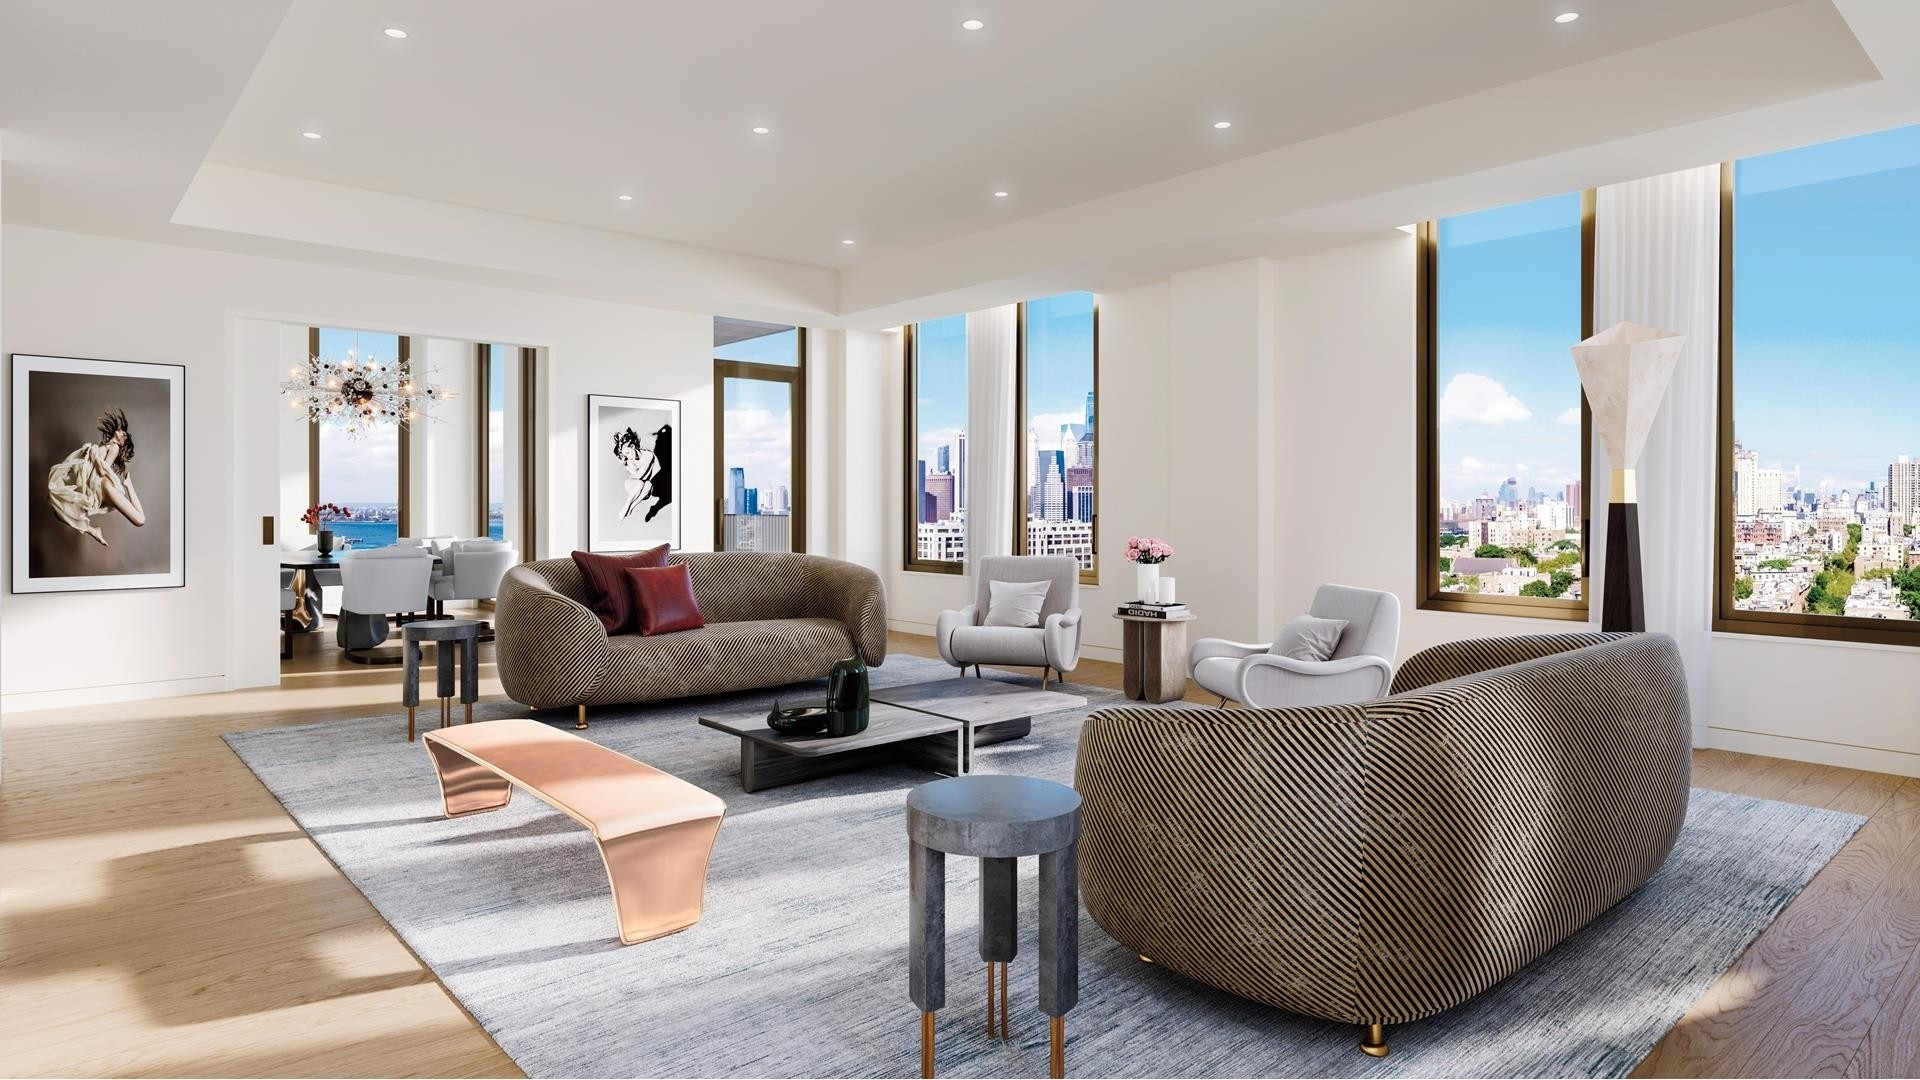 Condominium pour l Vente à 5 River Park, 347 Henry St, PH Cobble Hill, Brooklyn, NY 11201